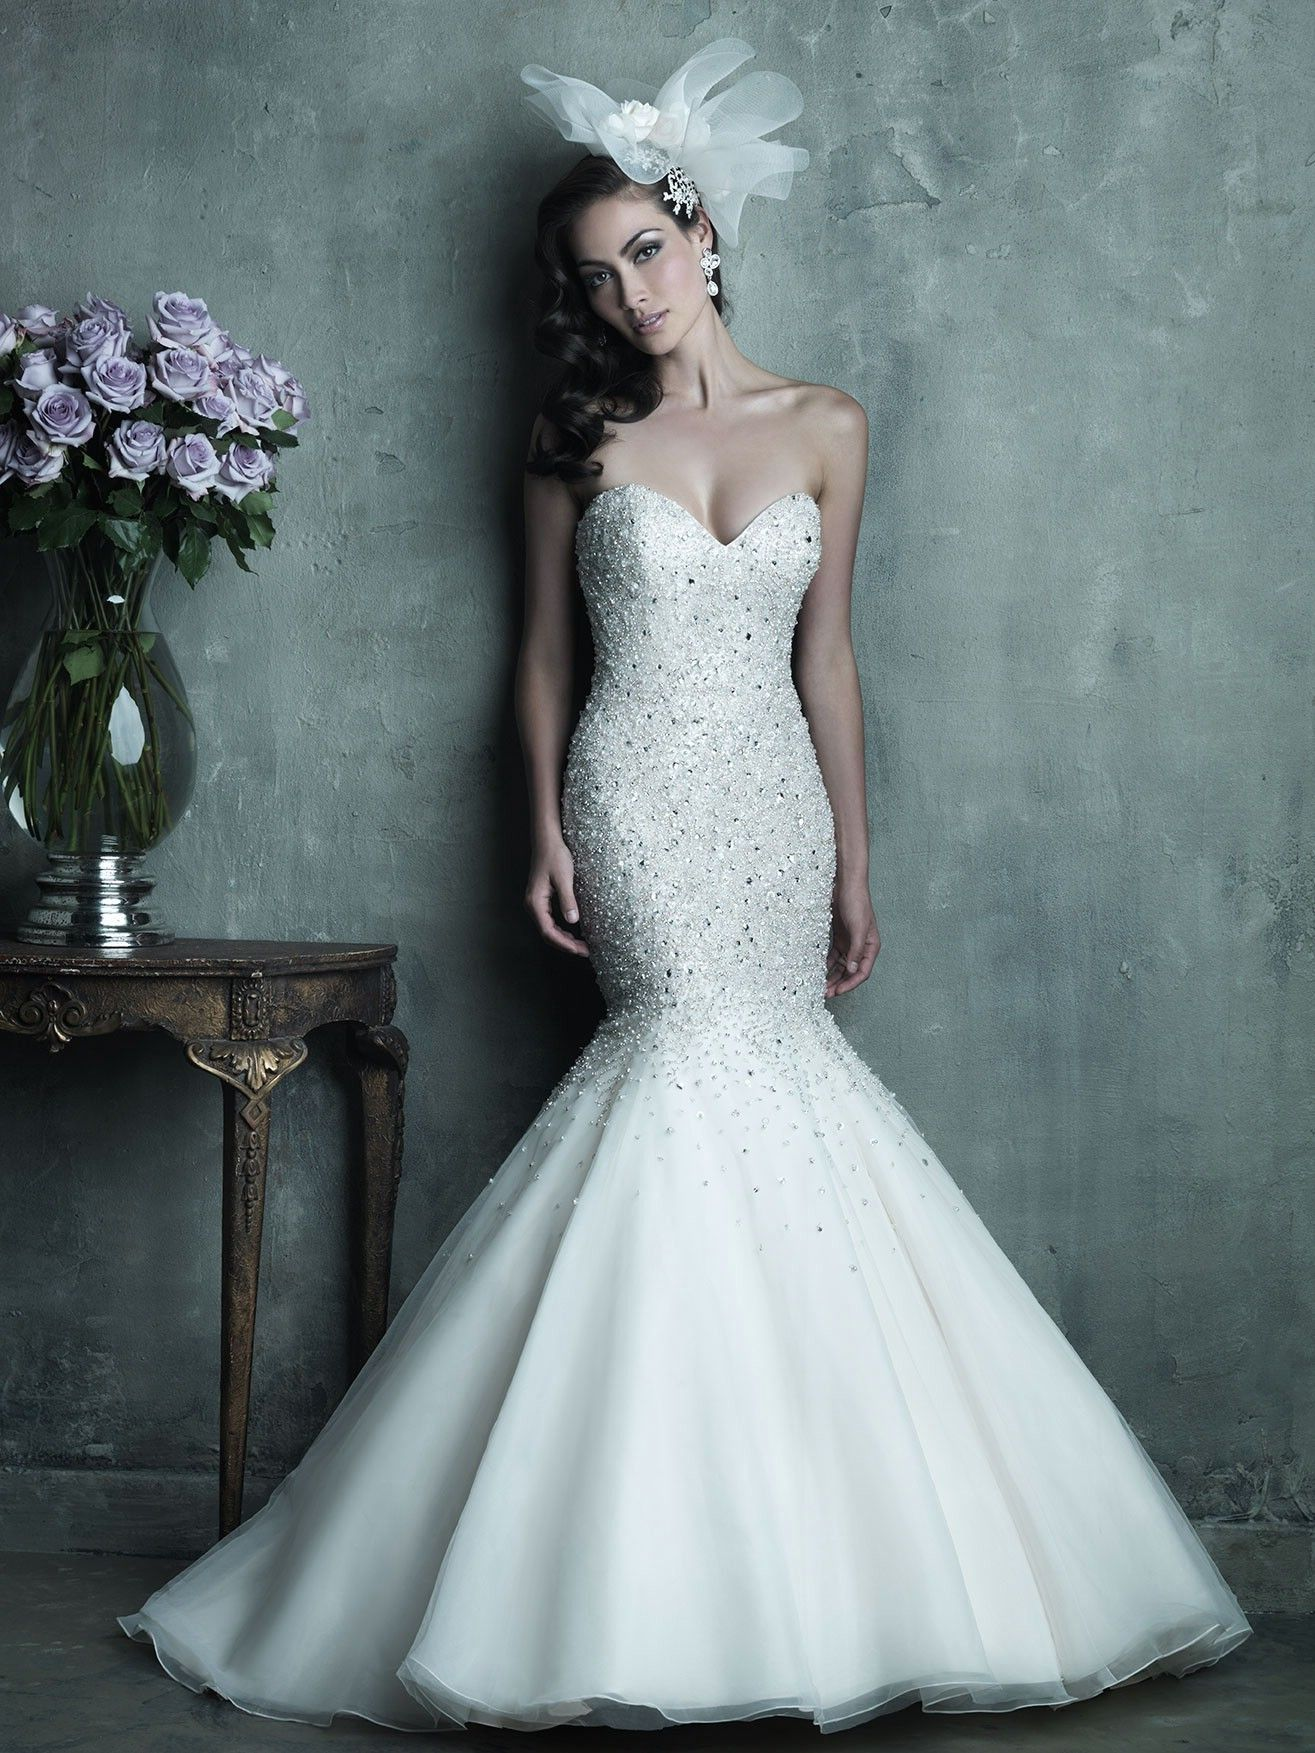 eb7eecd741 Fabulous sparkly mermaid gown! Allure Couture Wedding Dresses - Style C286 # wedding #dresses